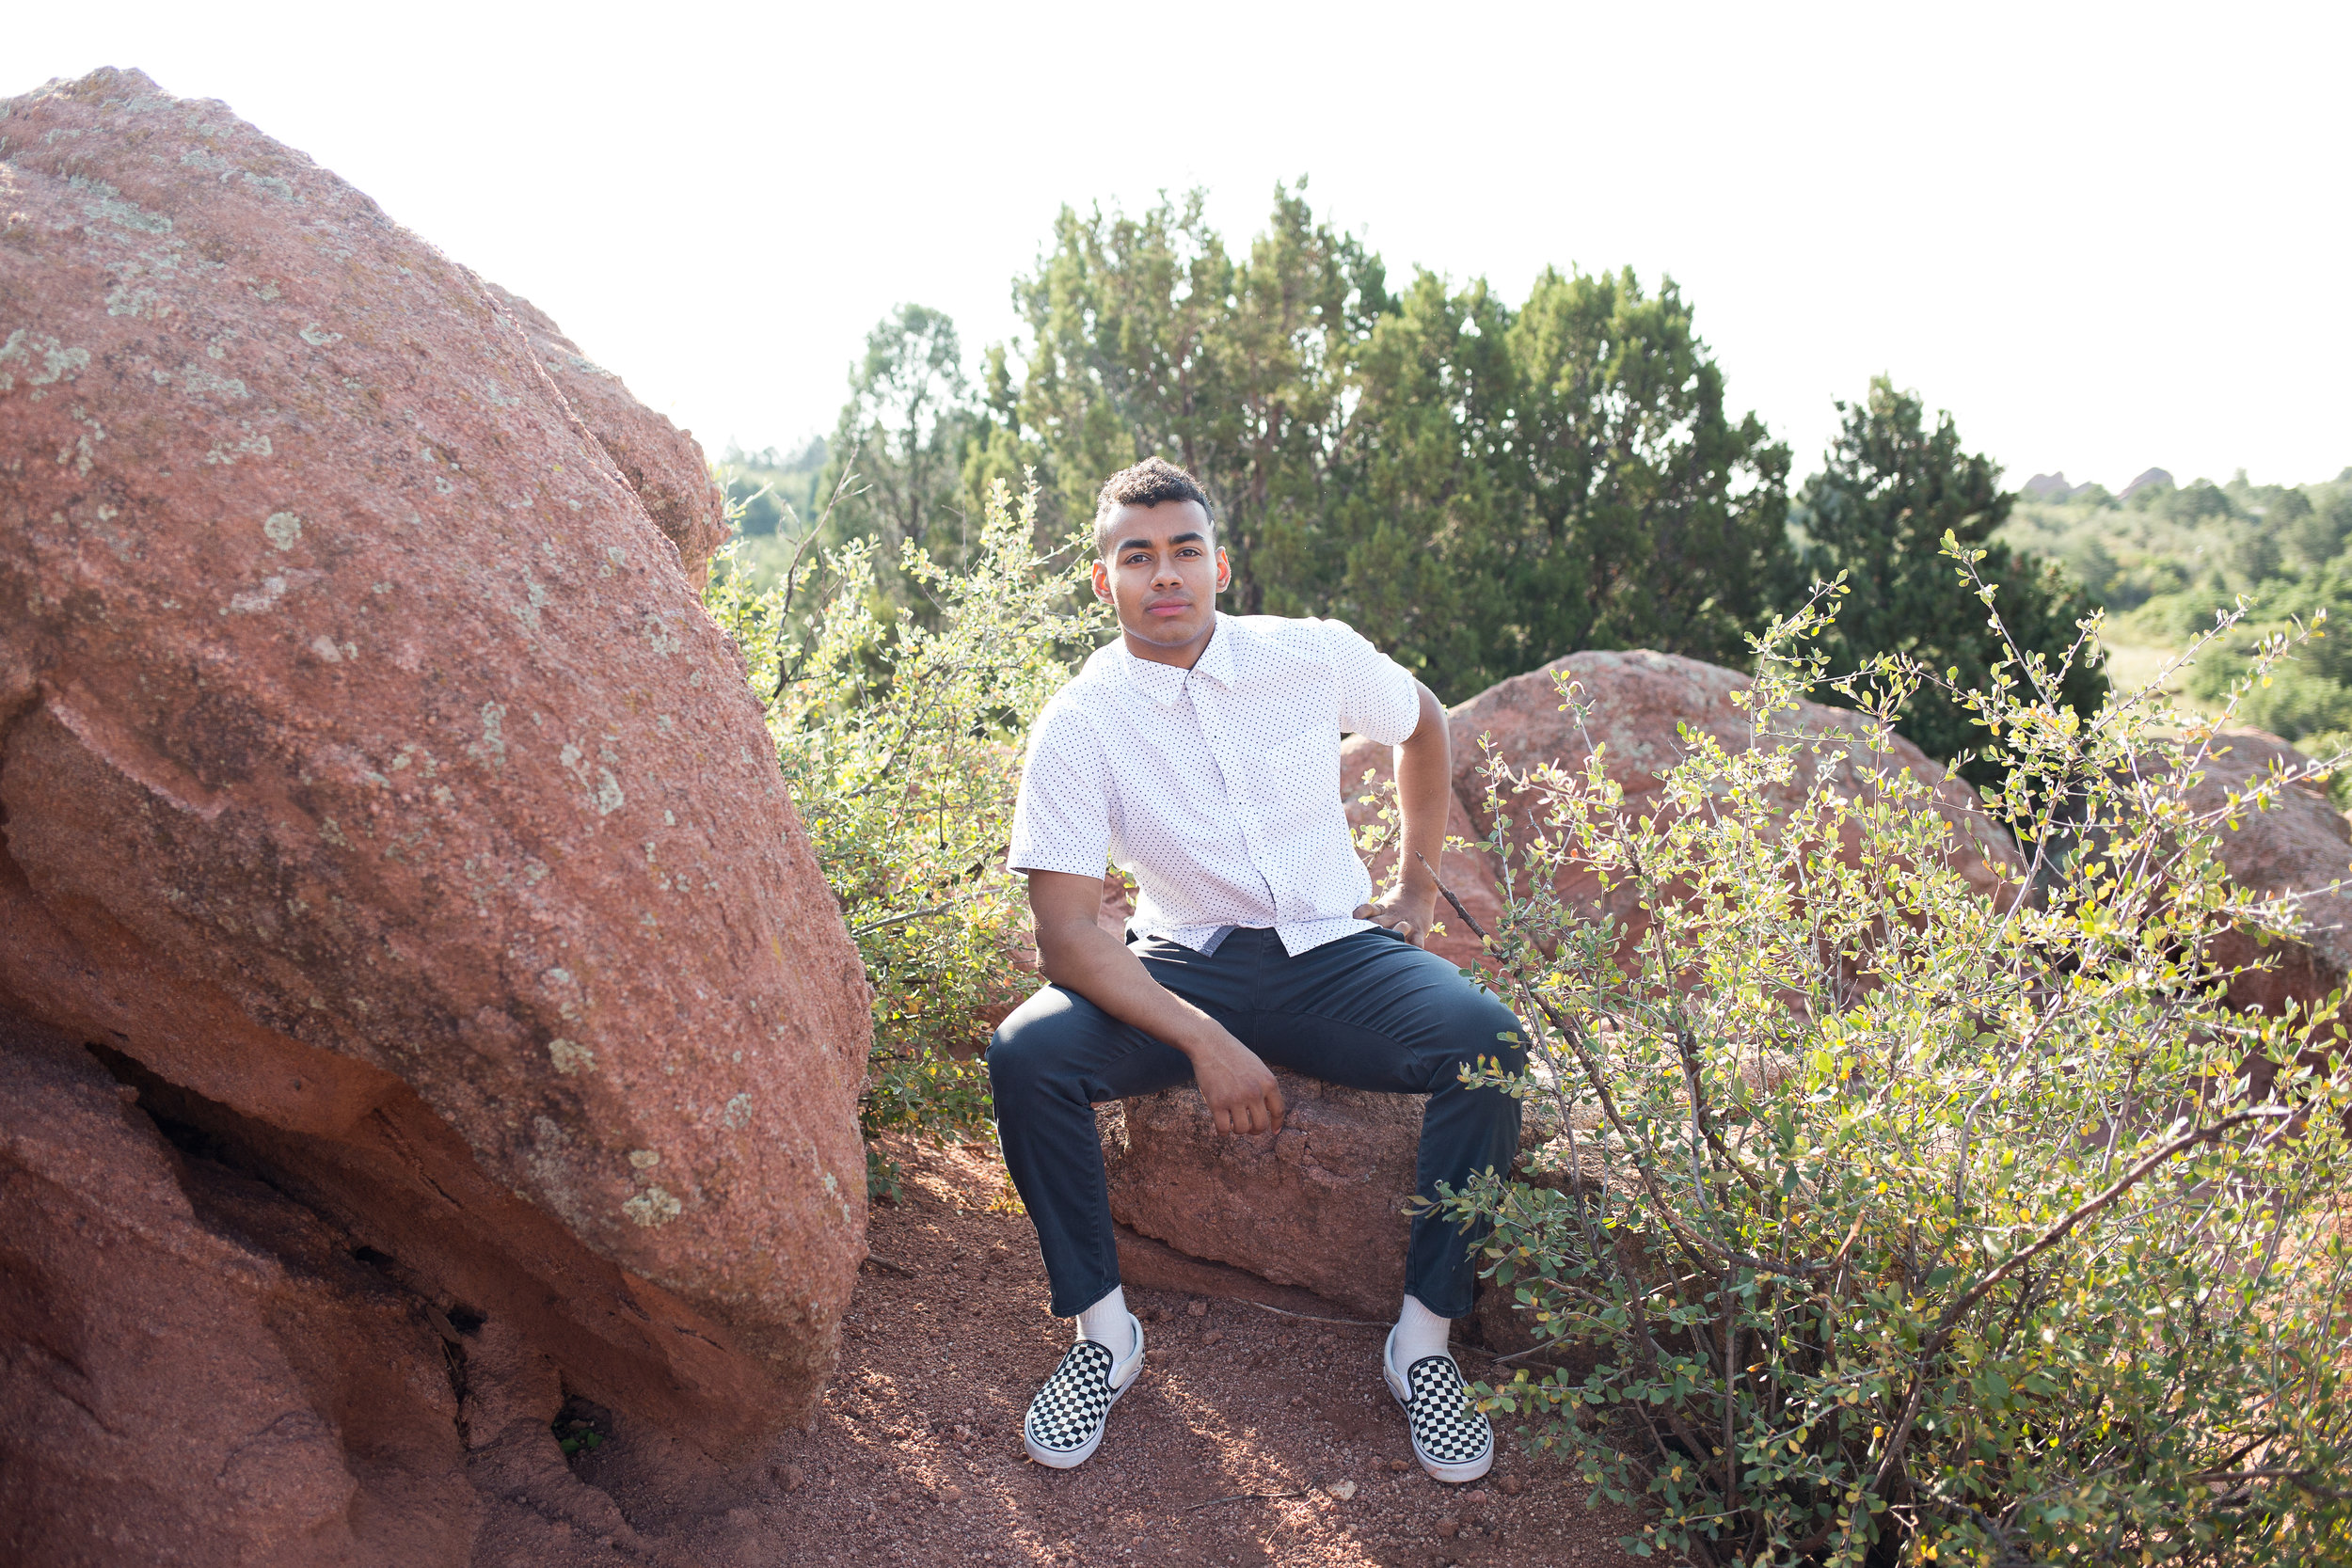 Stacy Carosa Photography senior boy sitting on red rock in Garden of the Gods by green bushes